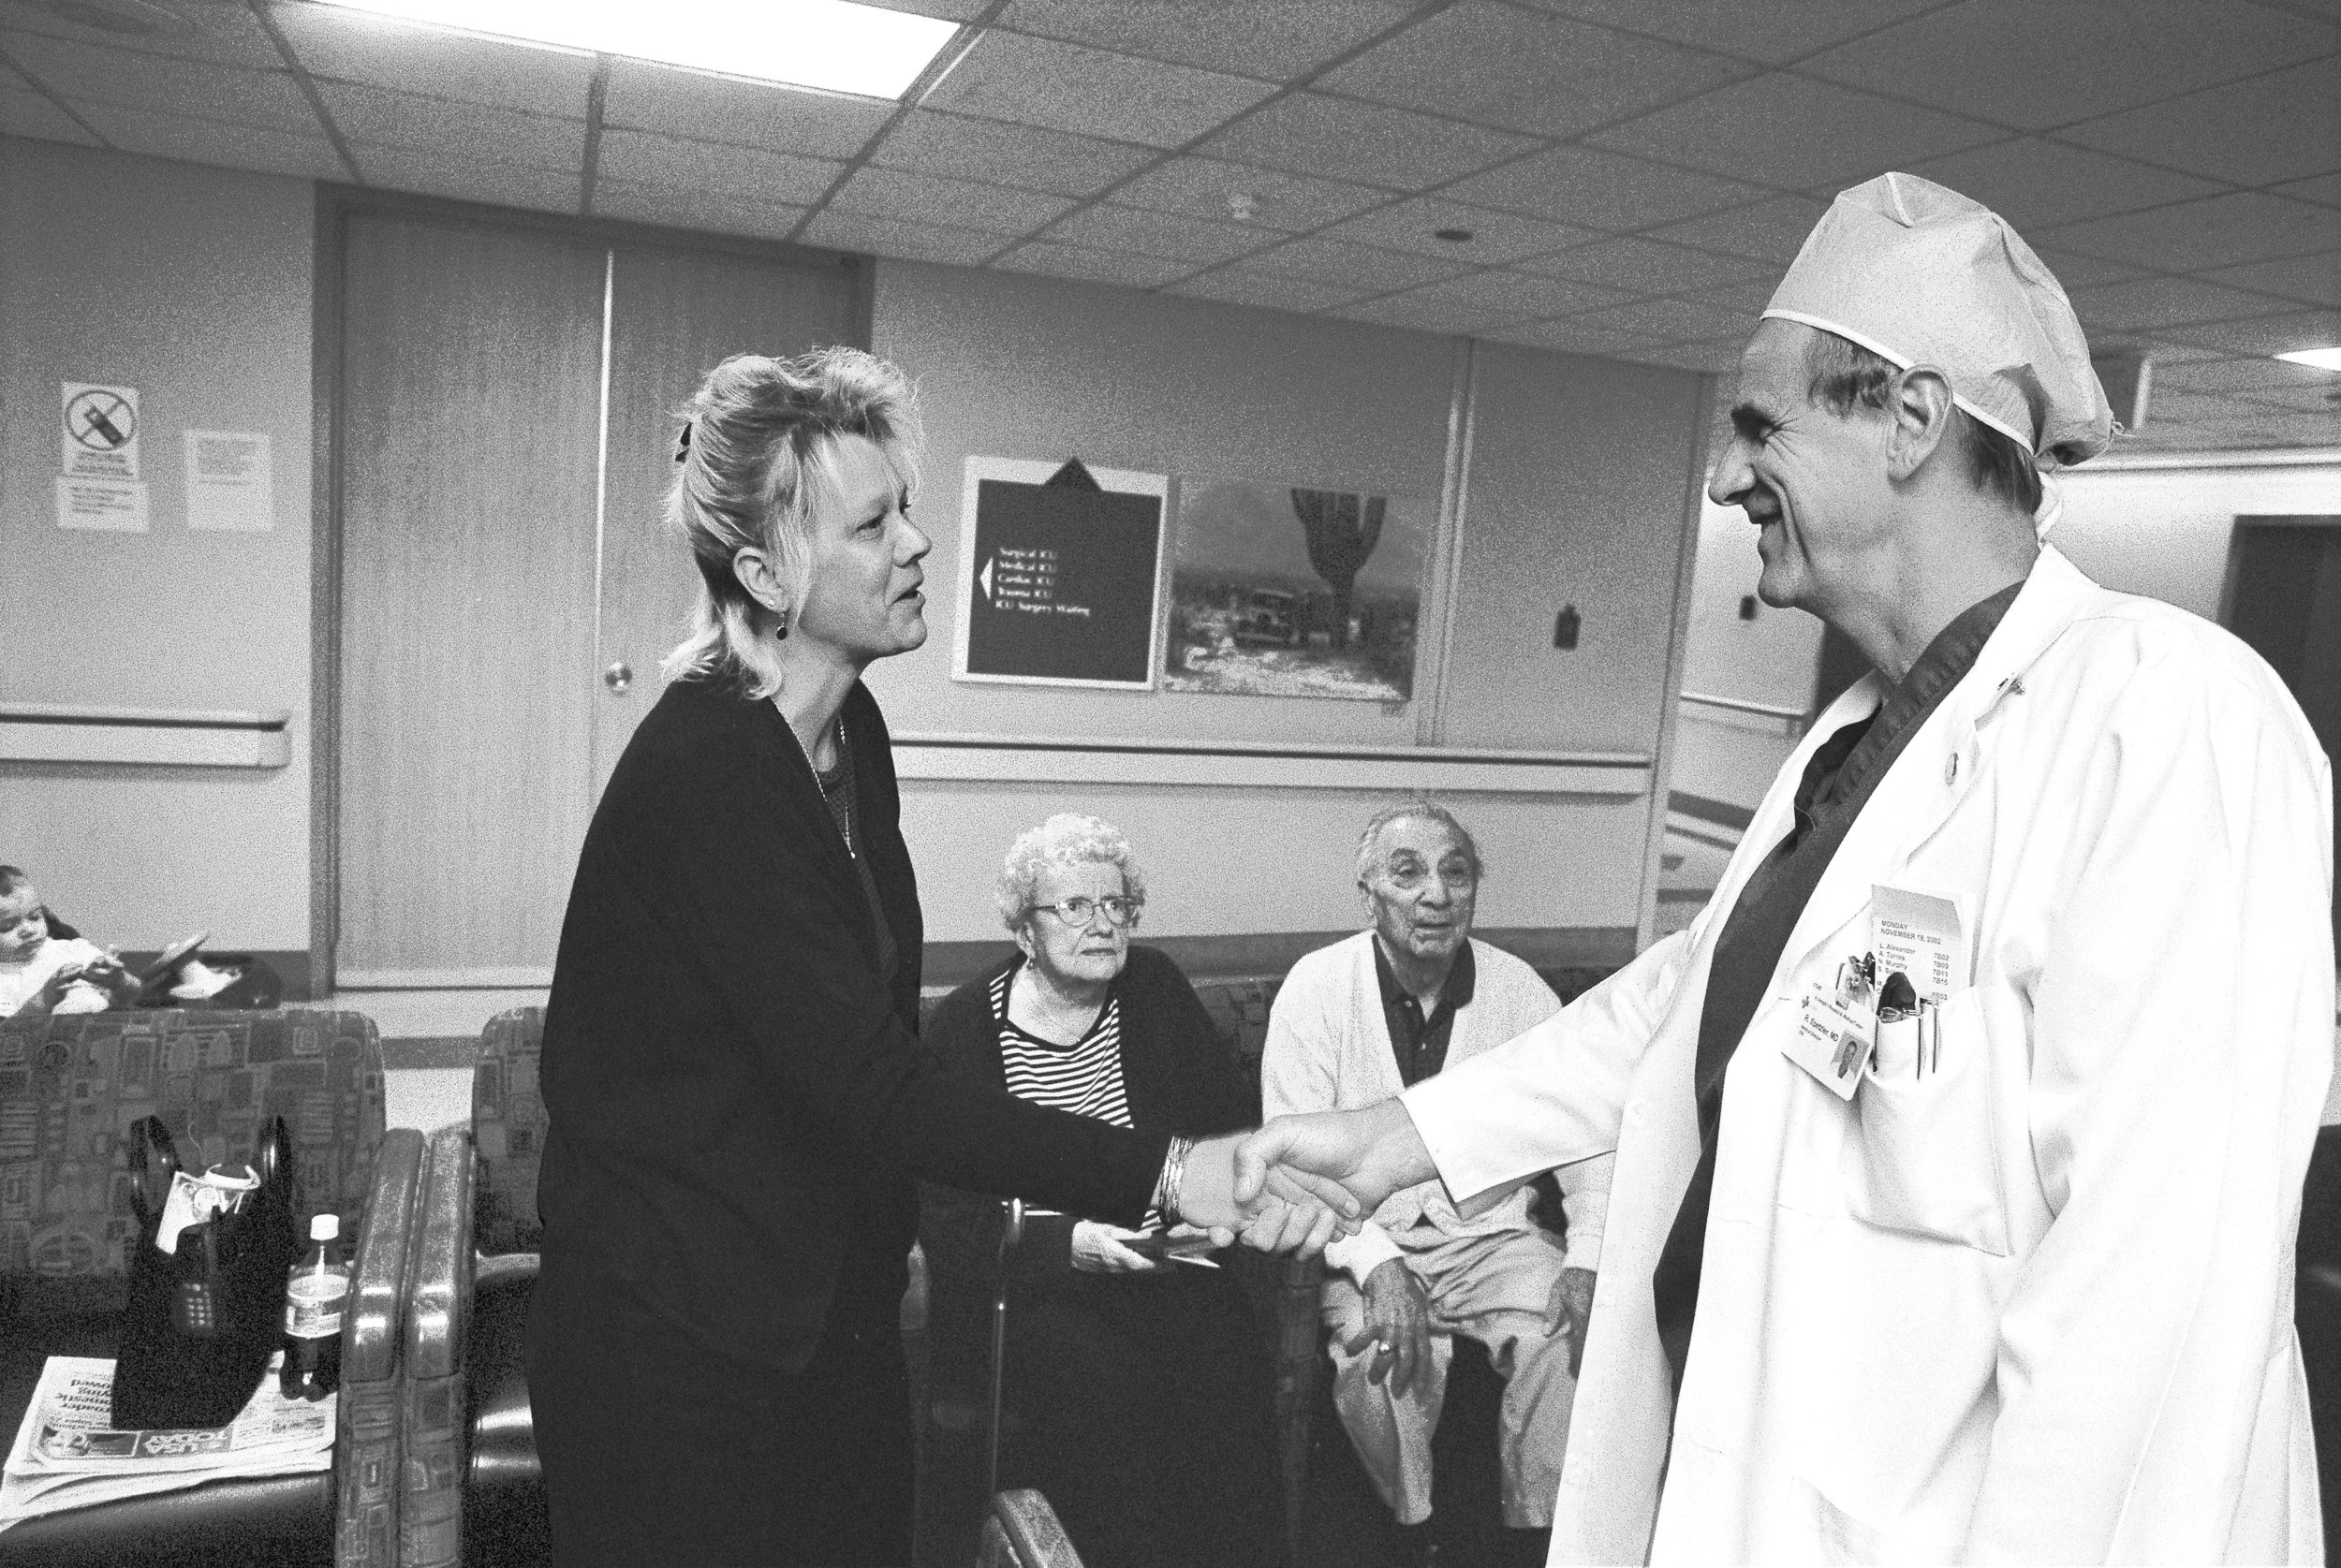 Dr. Spetzler giving the good news to the loved ones of patient on whom he has successfully operated. He had 'defused' an aneurysm buried deep within the patient's brain.